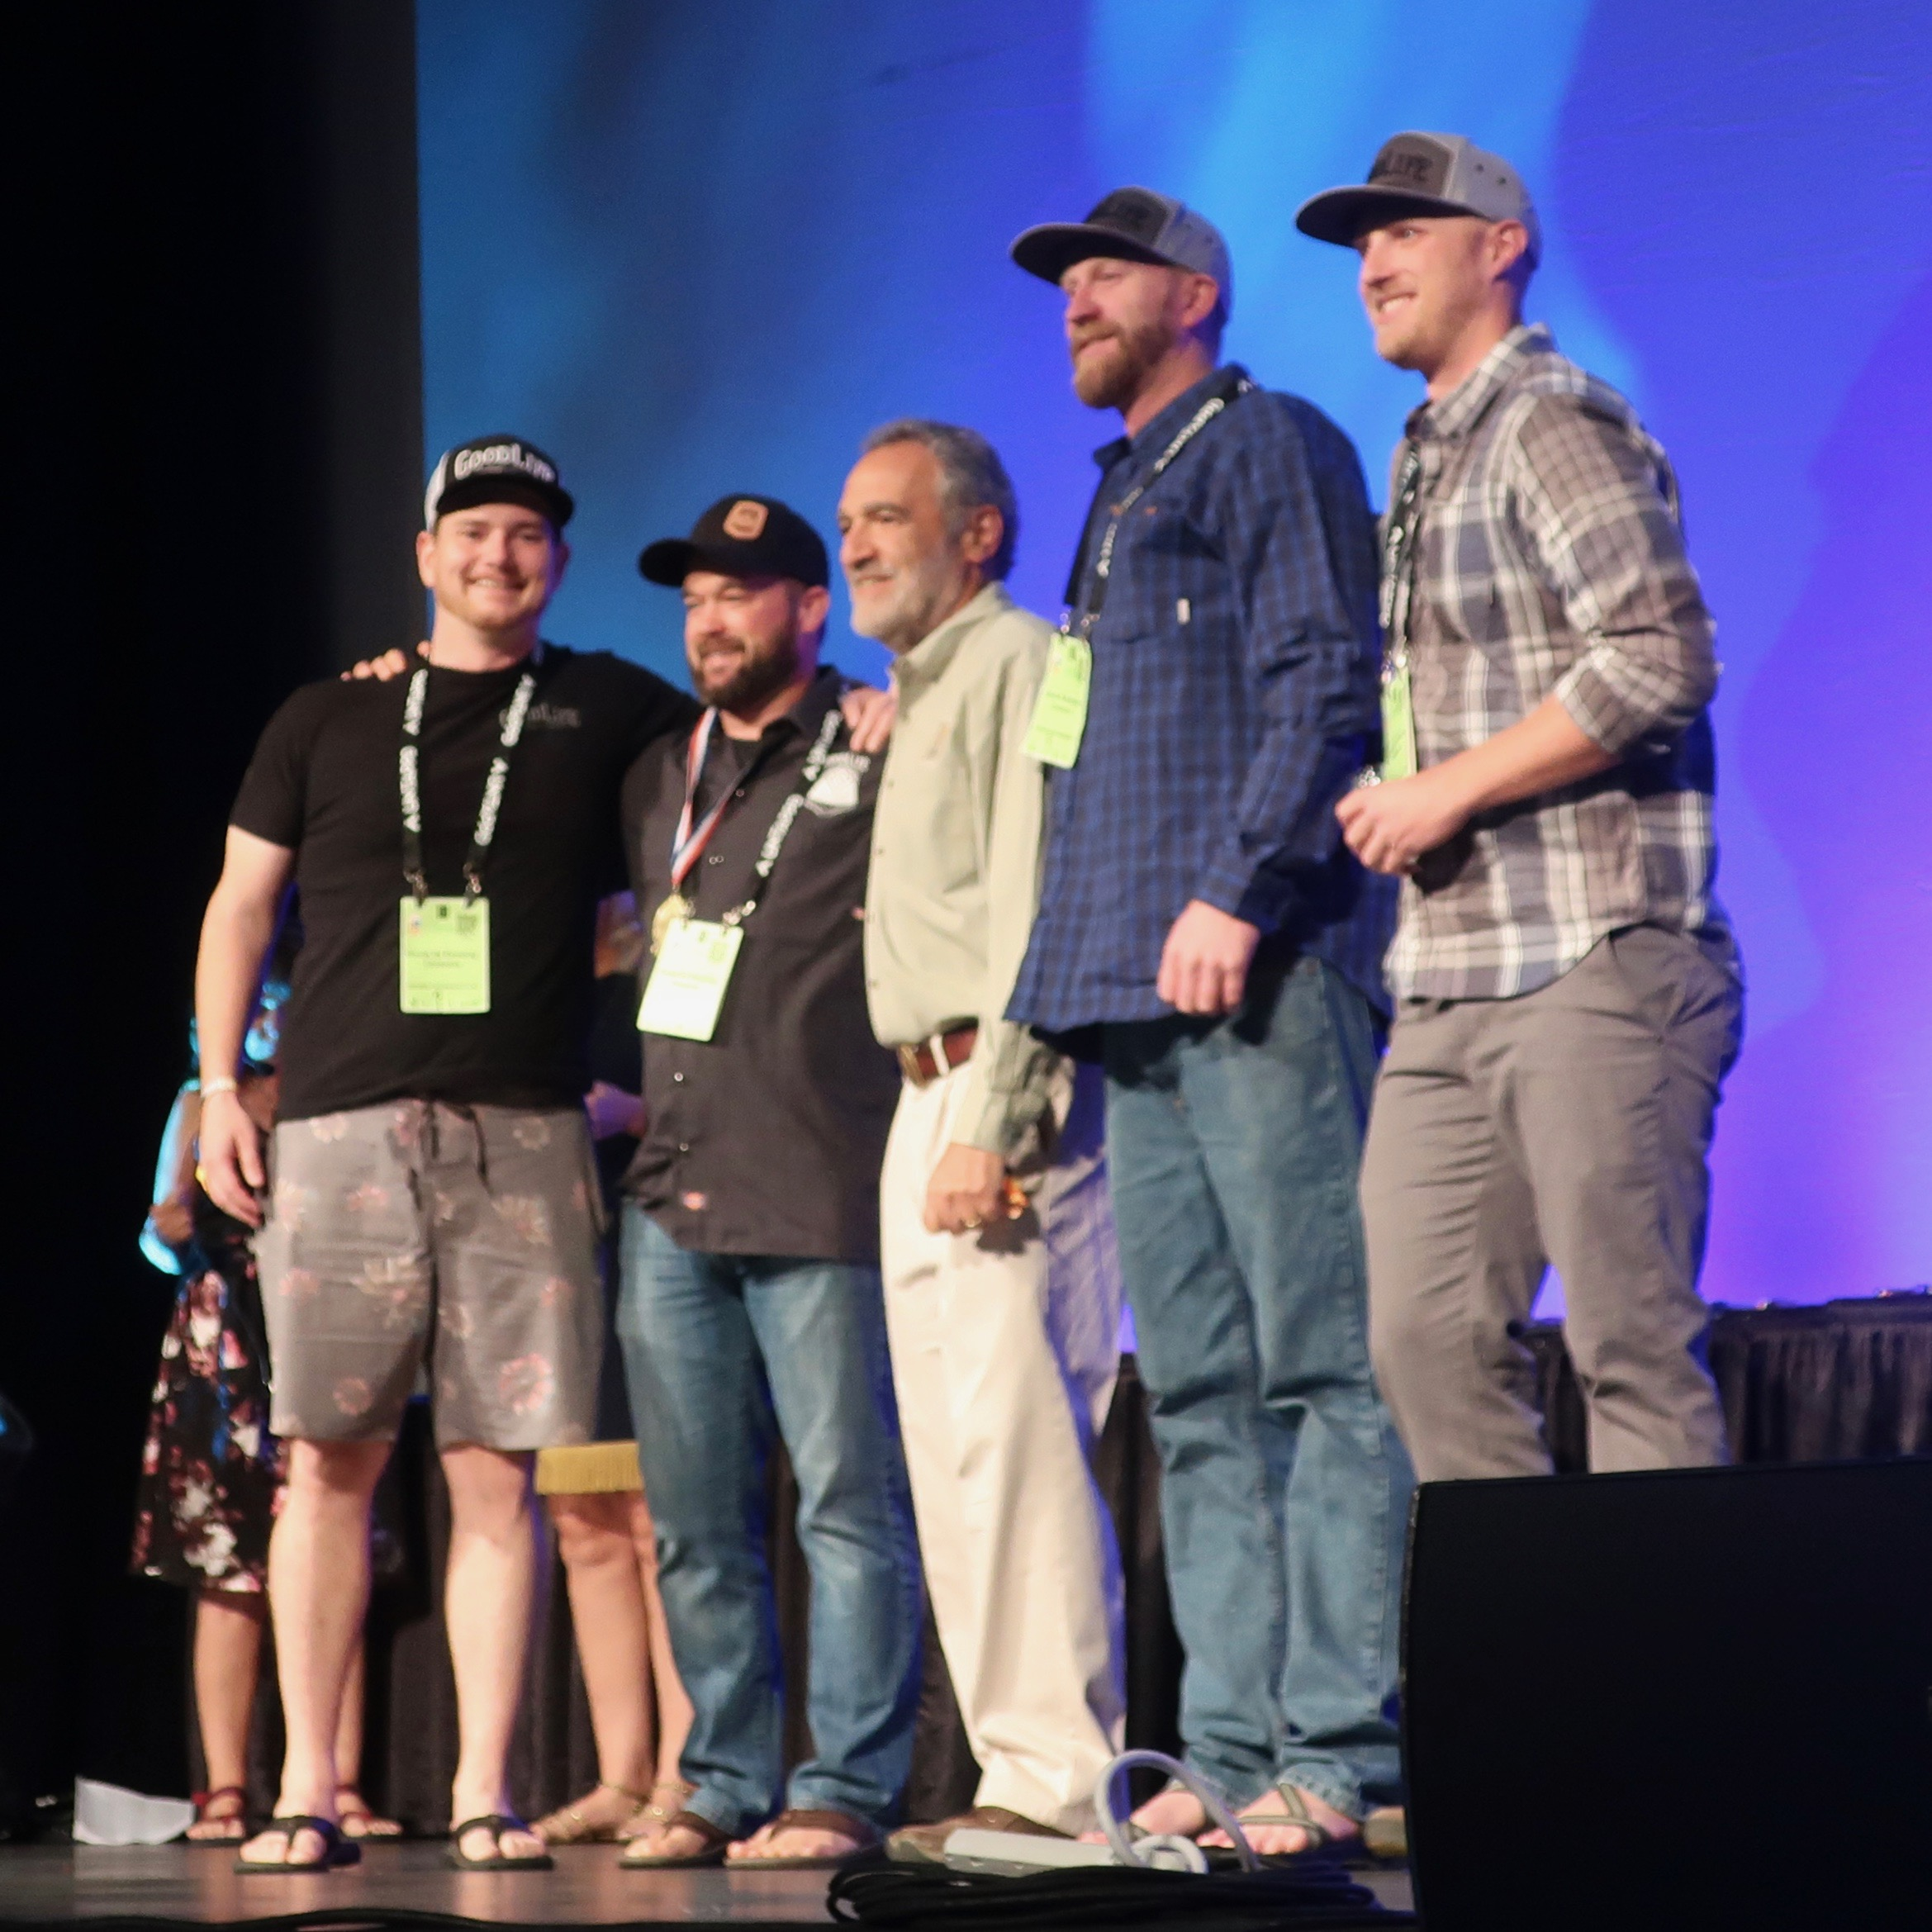 GoodLife Brewing wins a Gold Medal for its Sweet As Pale Ale for the second consecutive year at the 2018 Great American Beer Festival.